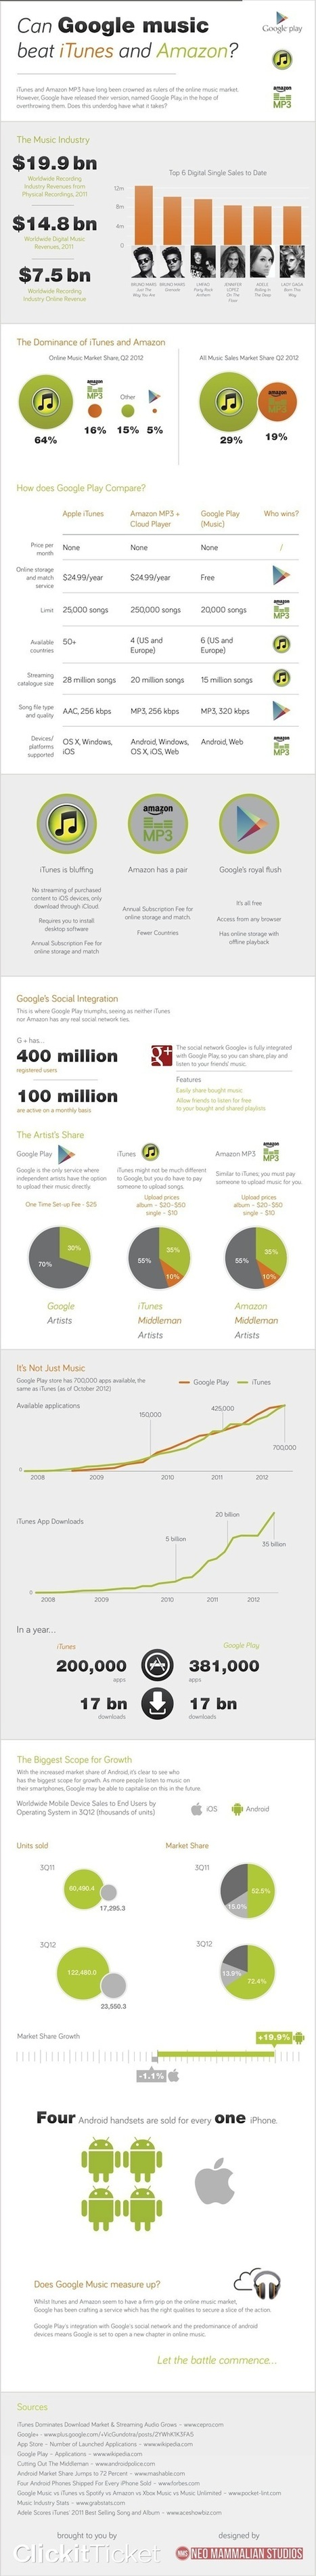 Can Google Music Beat iTunes and Amazon | E-Music ! | Scoop.it